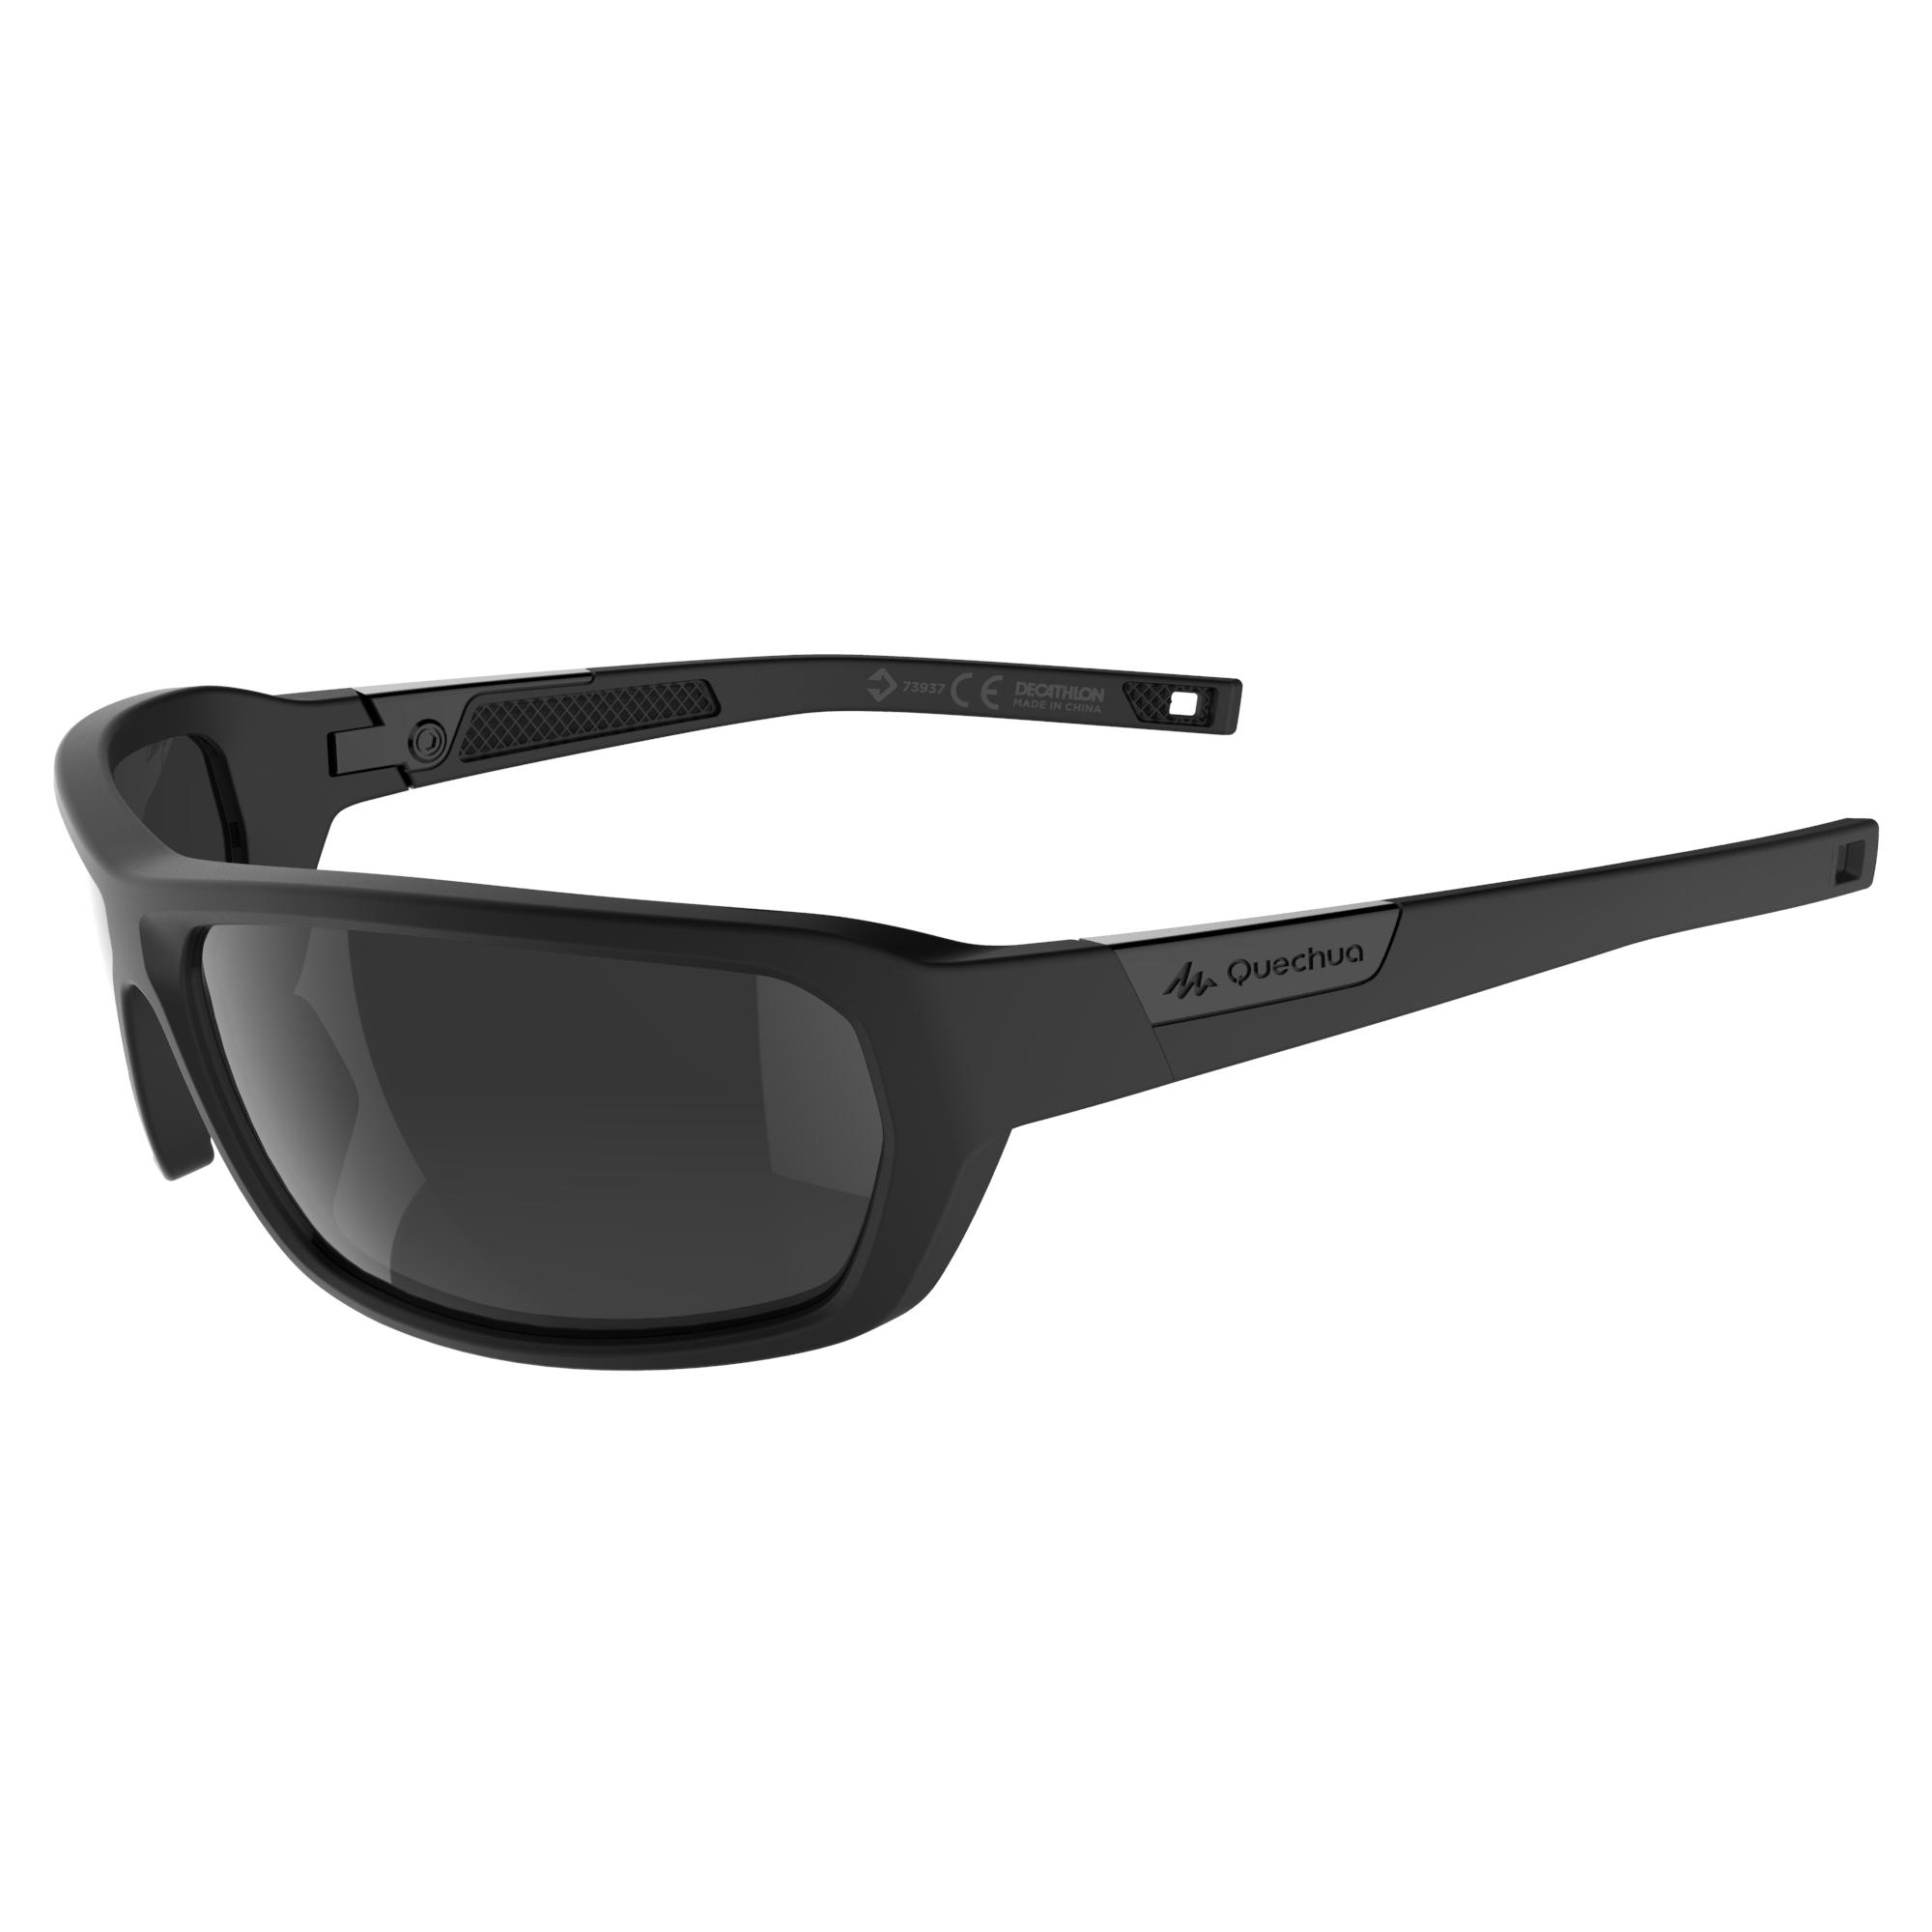 Black Category Hiking Mh510 3 Sunglasses 3A5Lq4Rj